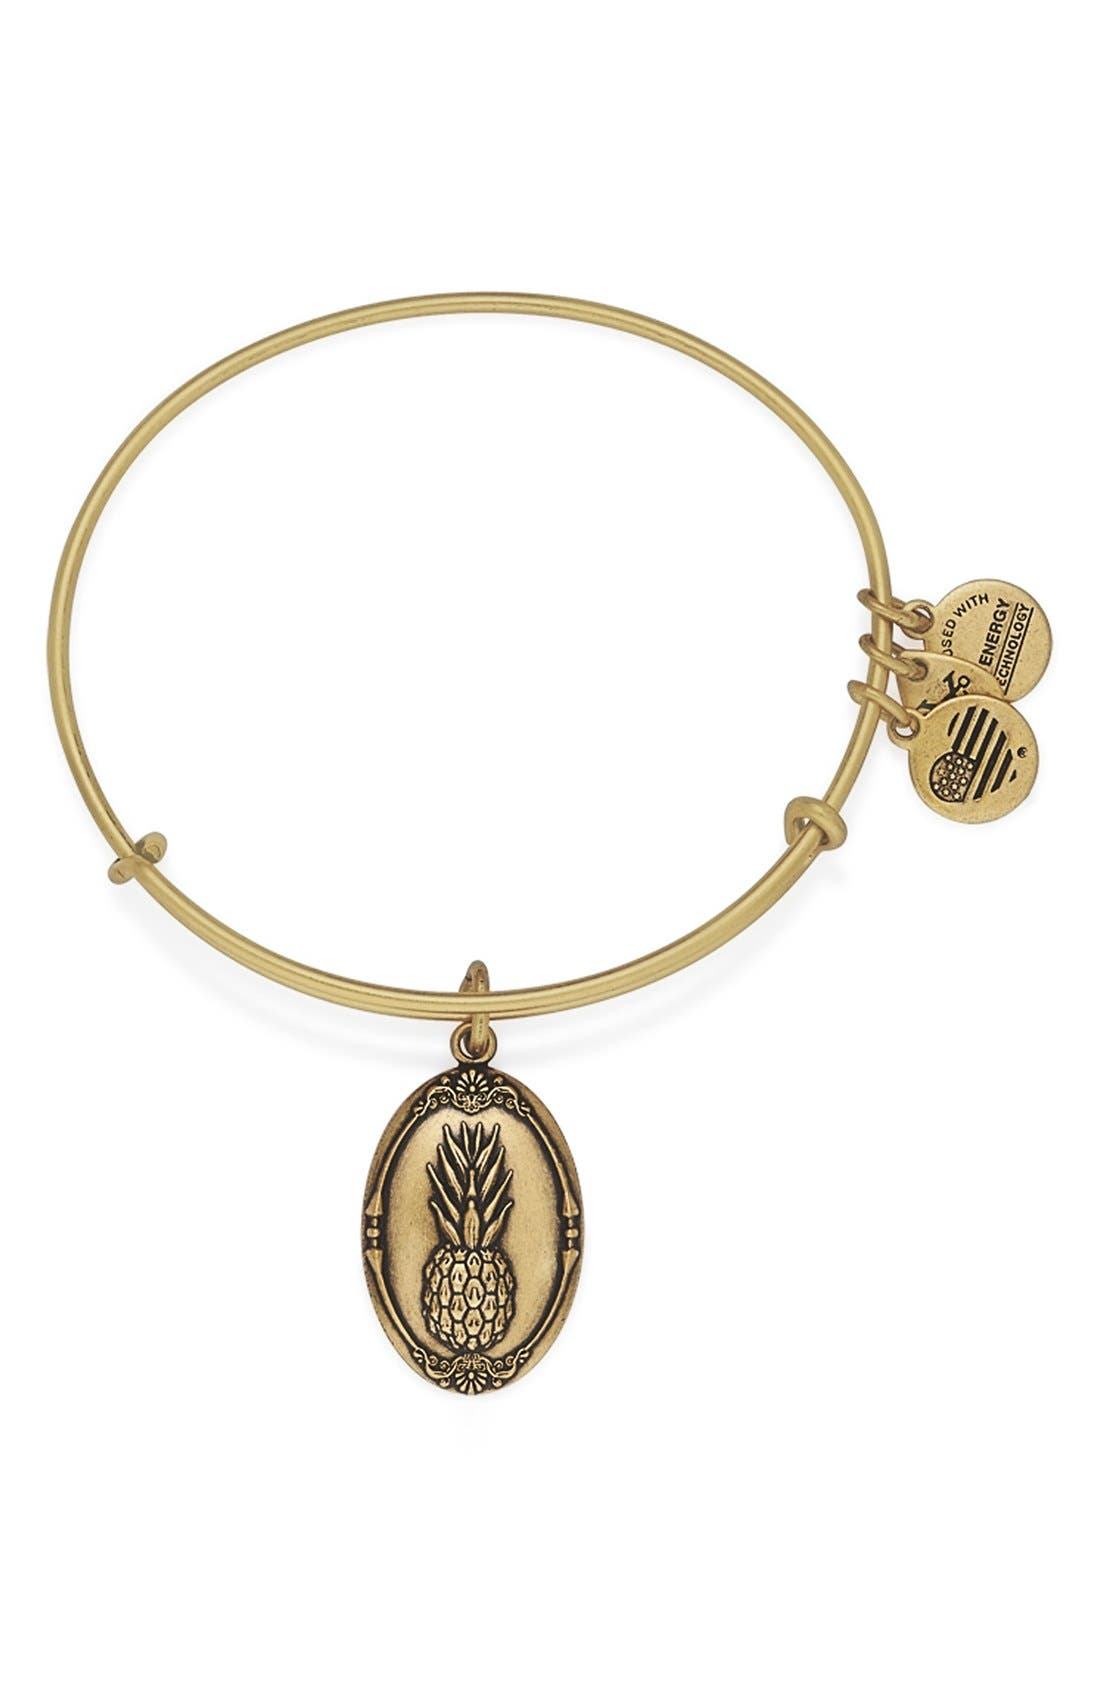 Main Image - Alex and Ani 'Pineapple' Adjustable Wire Bangle